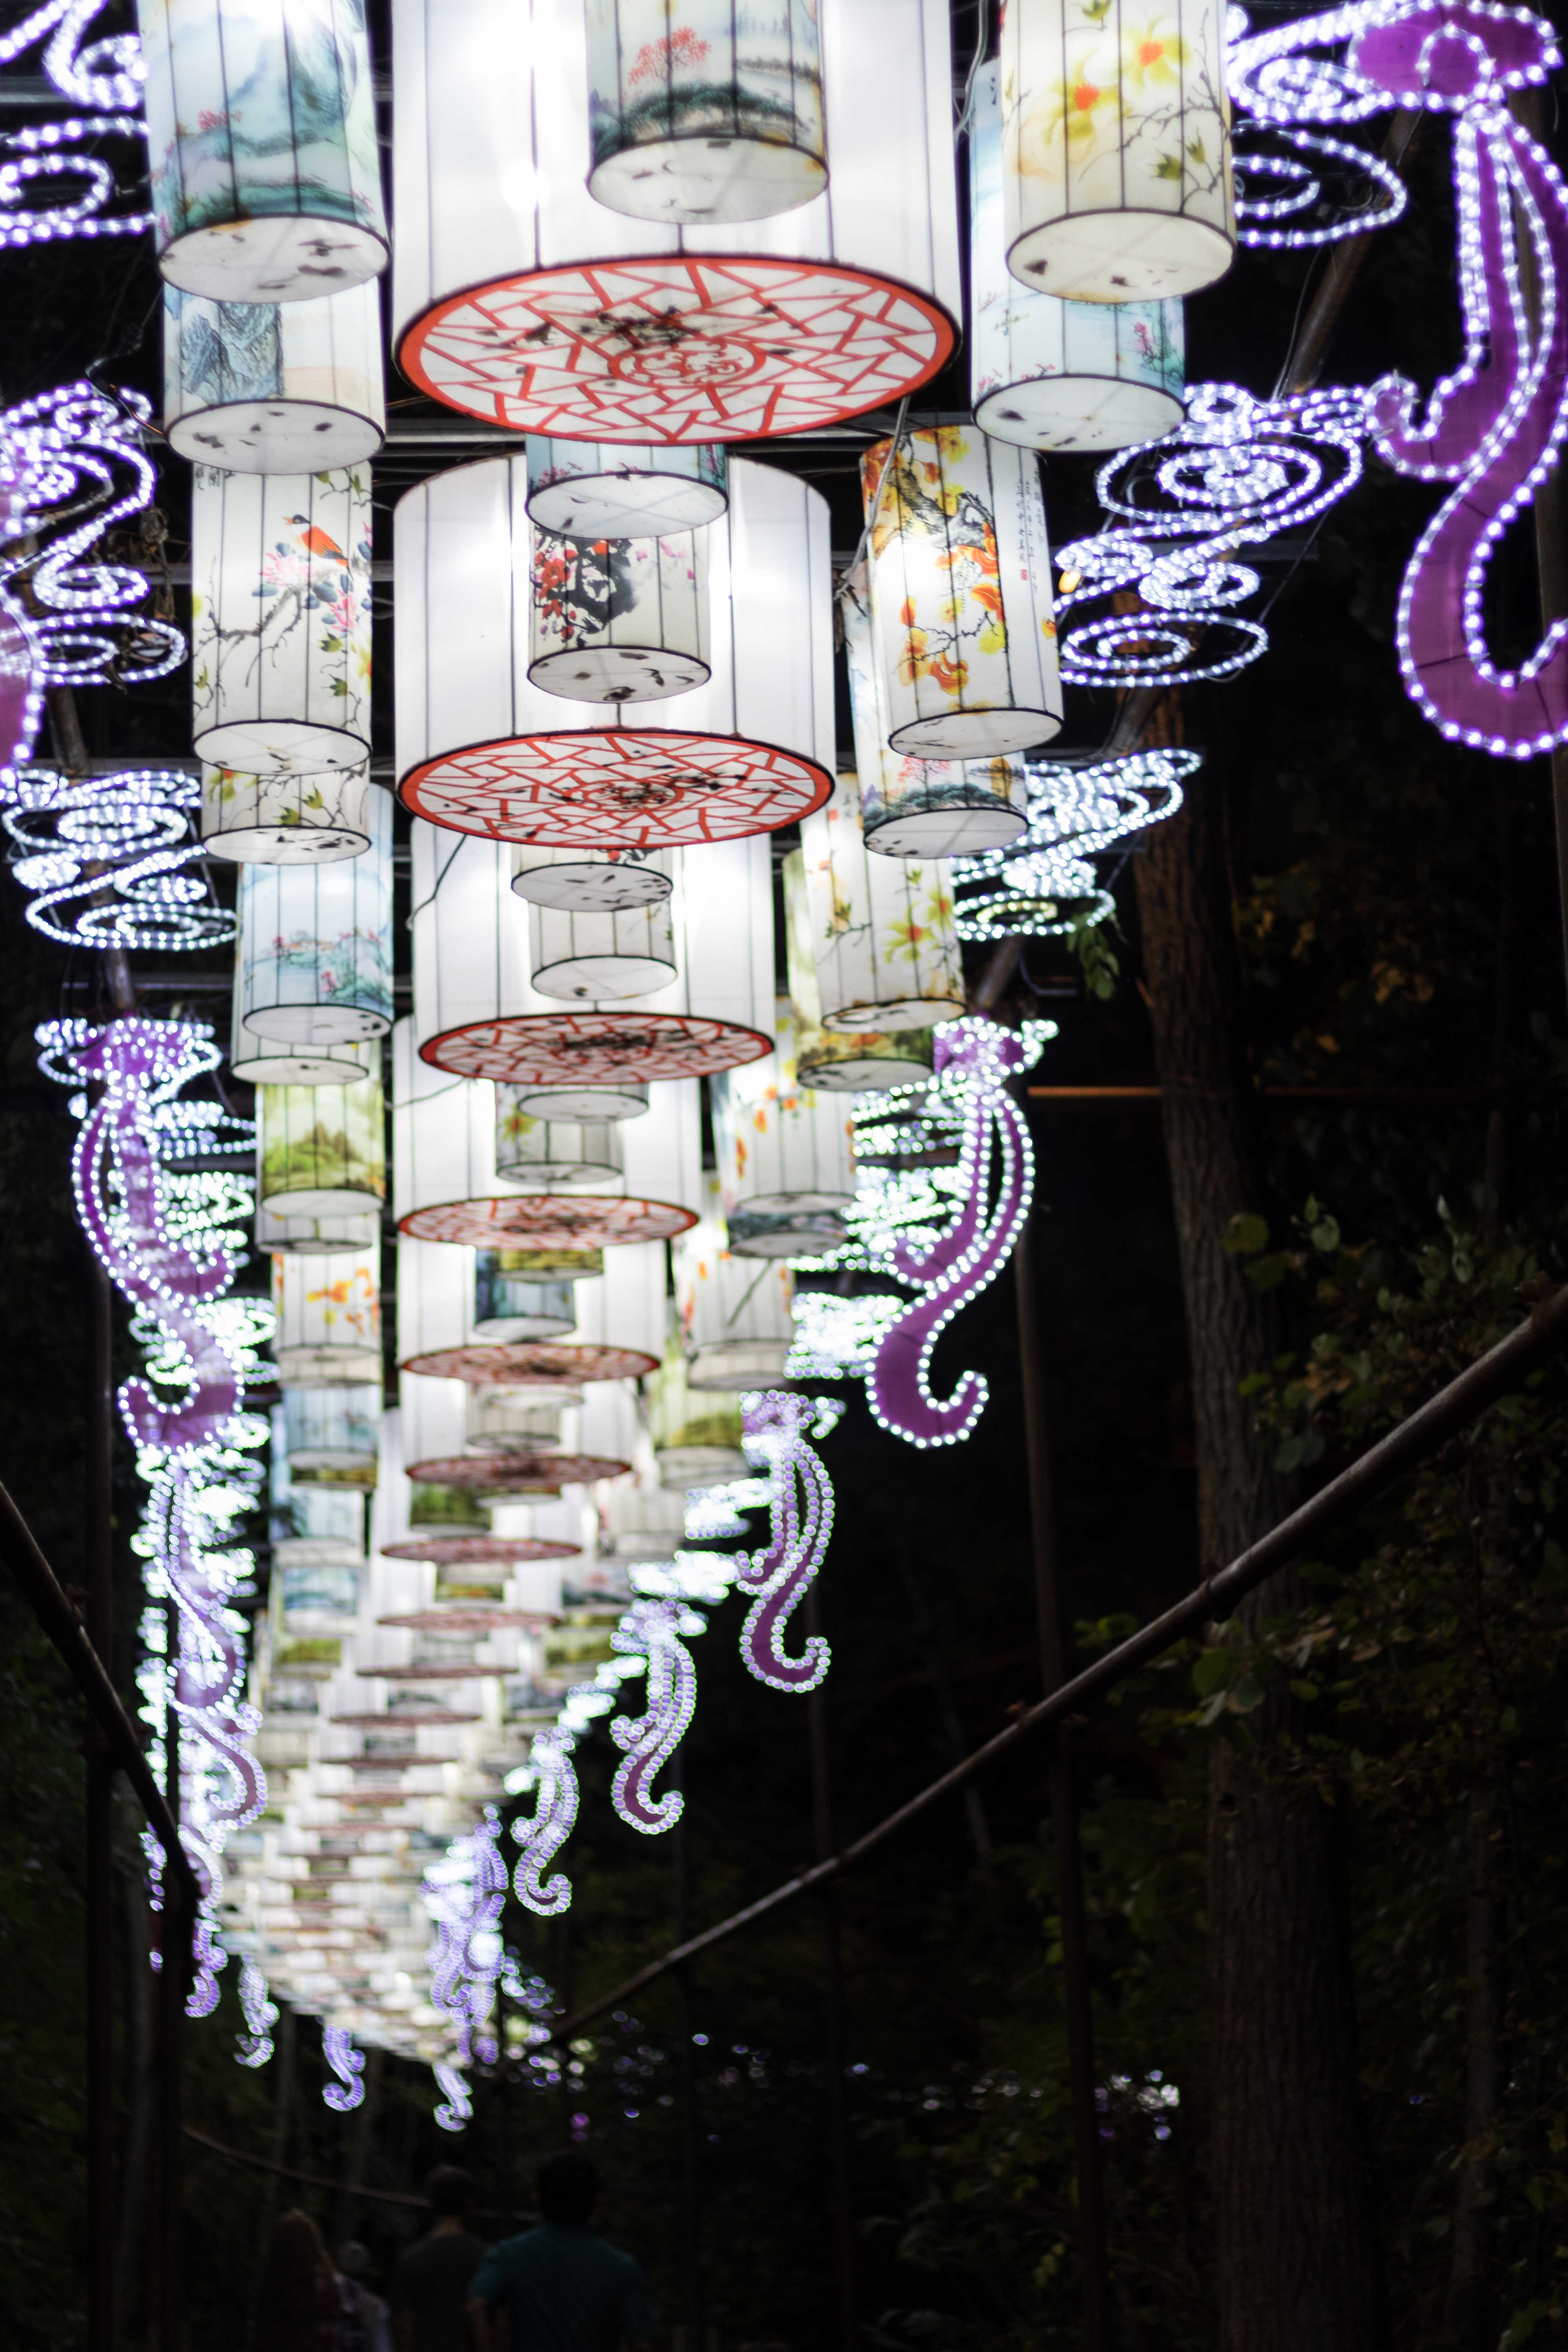 China Lights 2018, Boerner Botanical Gardens, Wisconsin | http://www.roseclearfield.com